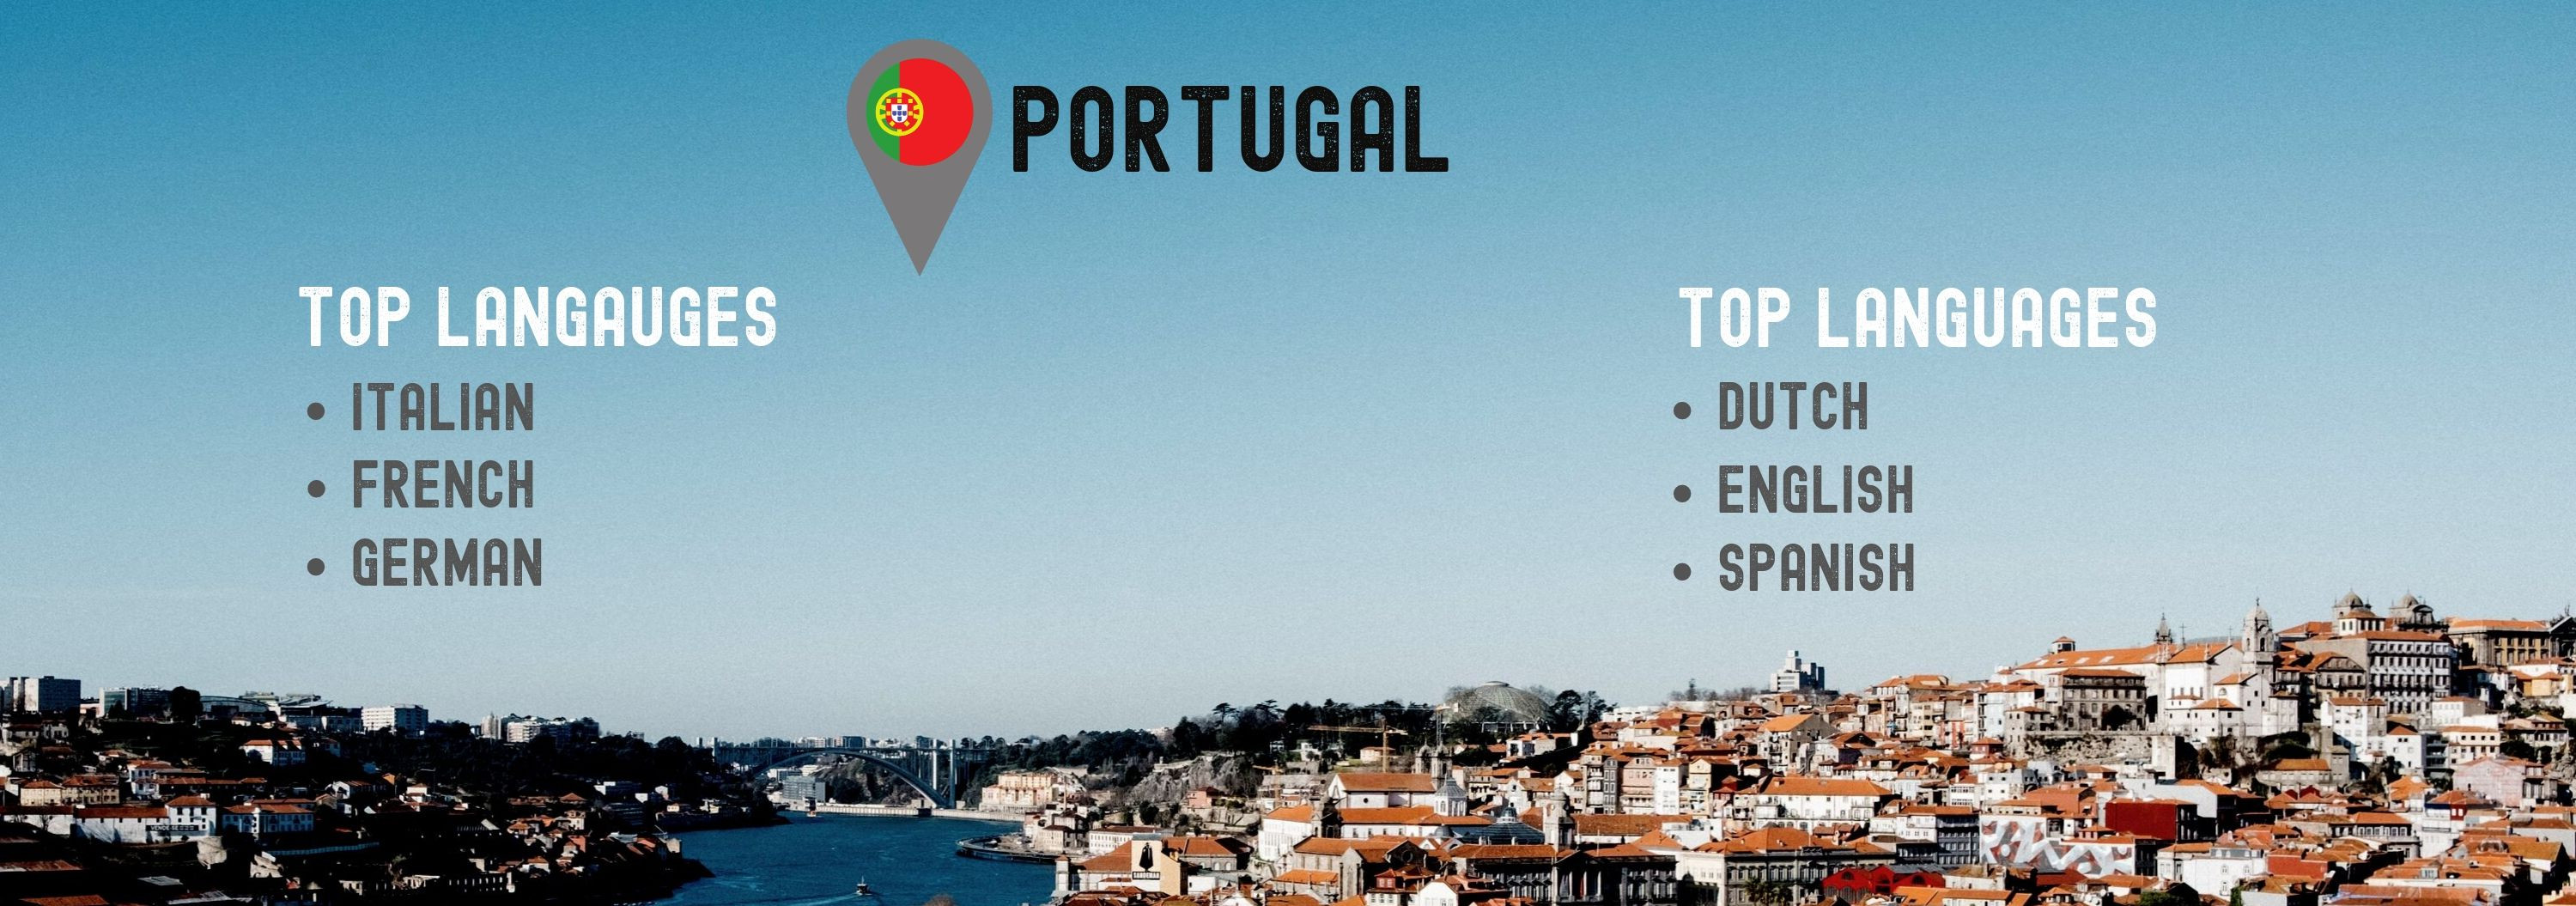 PORTUGAL-JOBS-LANGUAGES